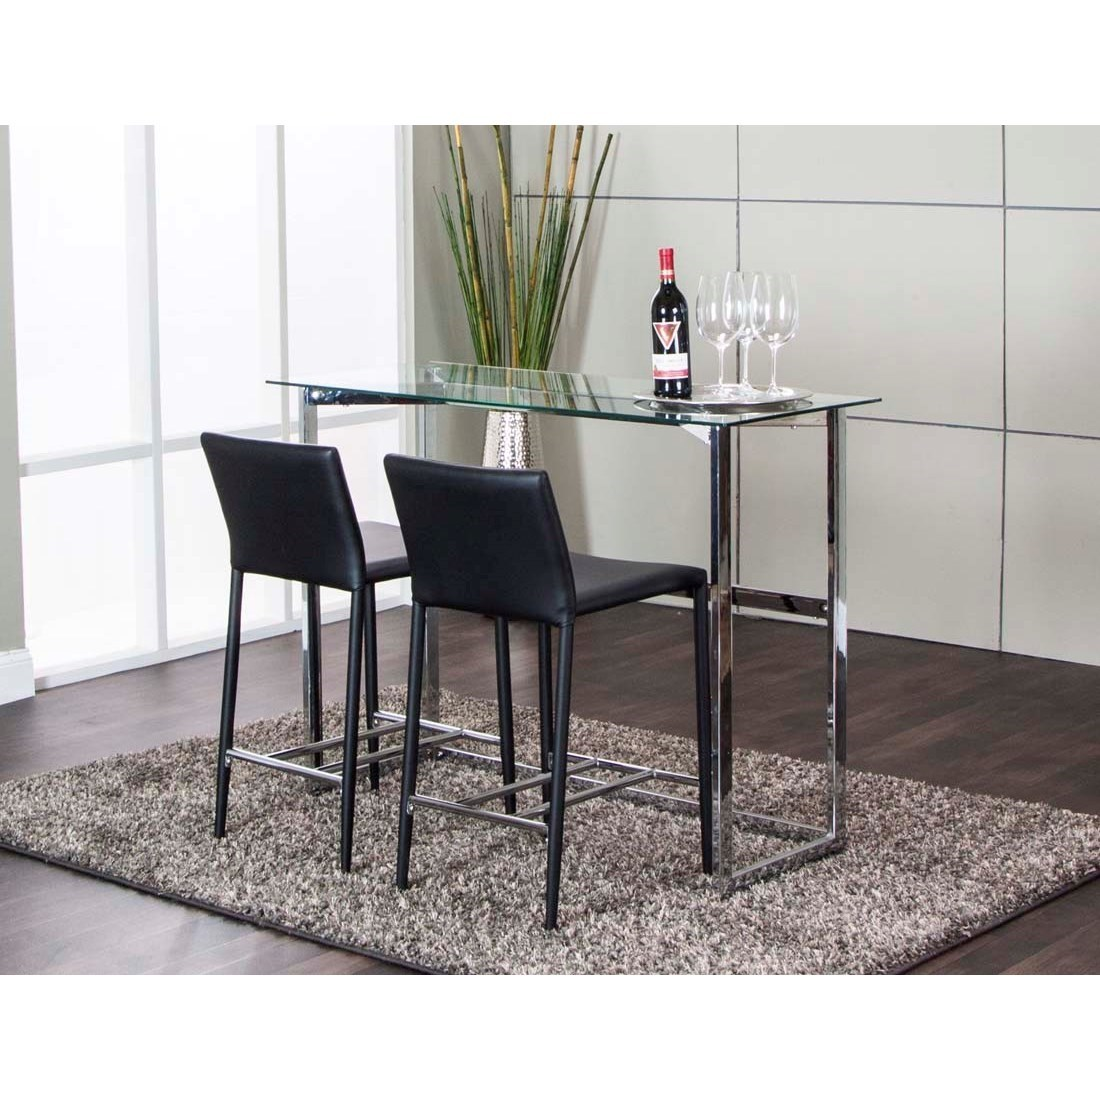 3-Piece Counter Height Table and Chair Set